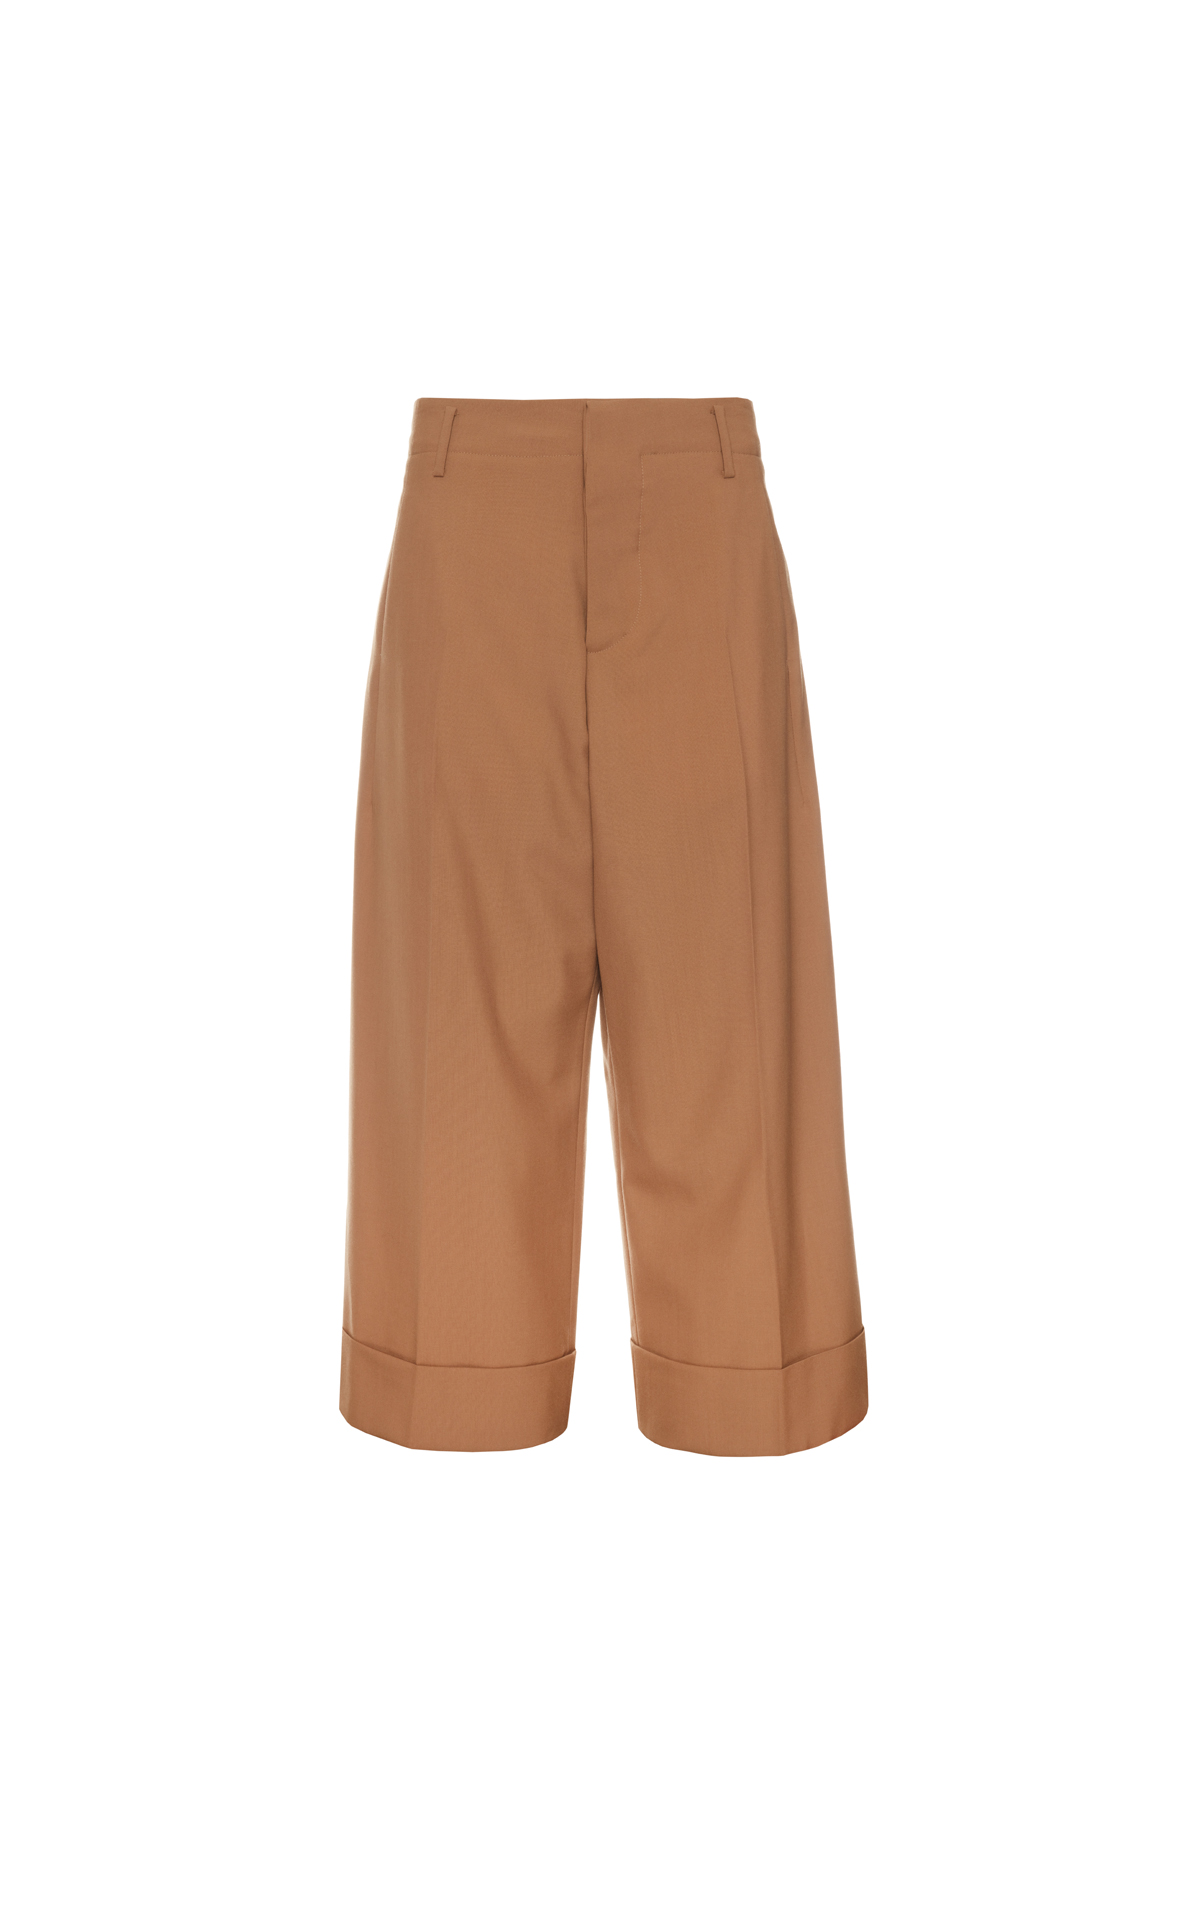 Marni Trouser tropical wood hazelnut from Bicester Village